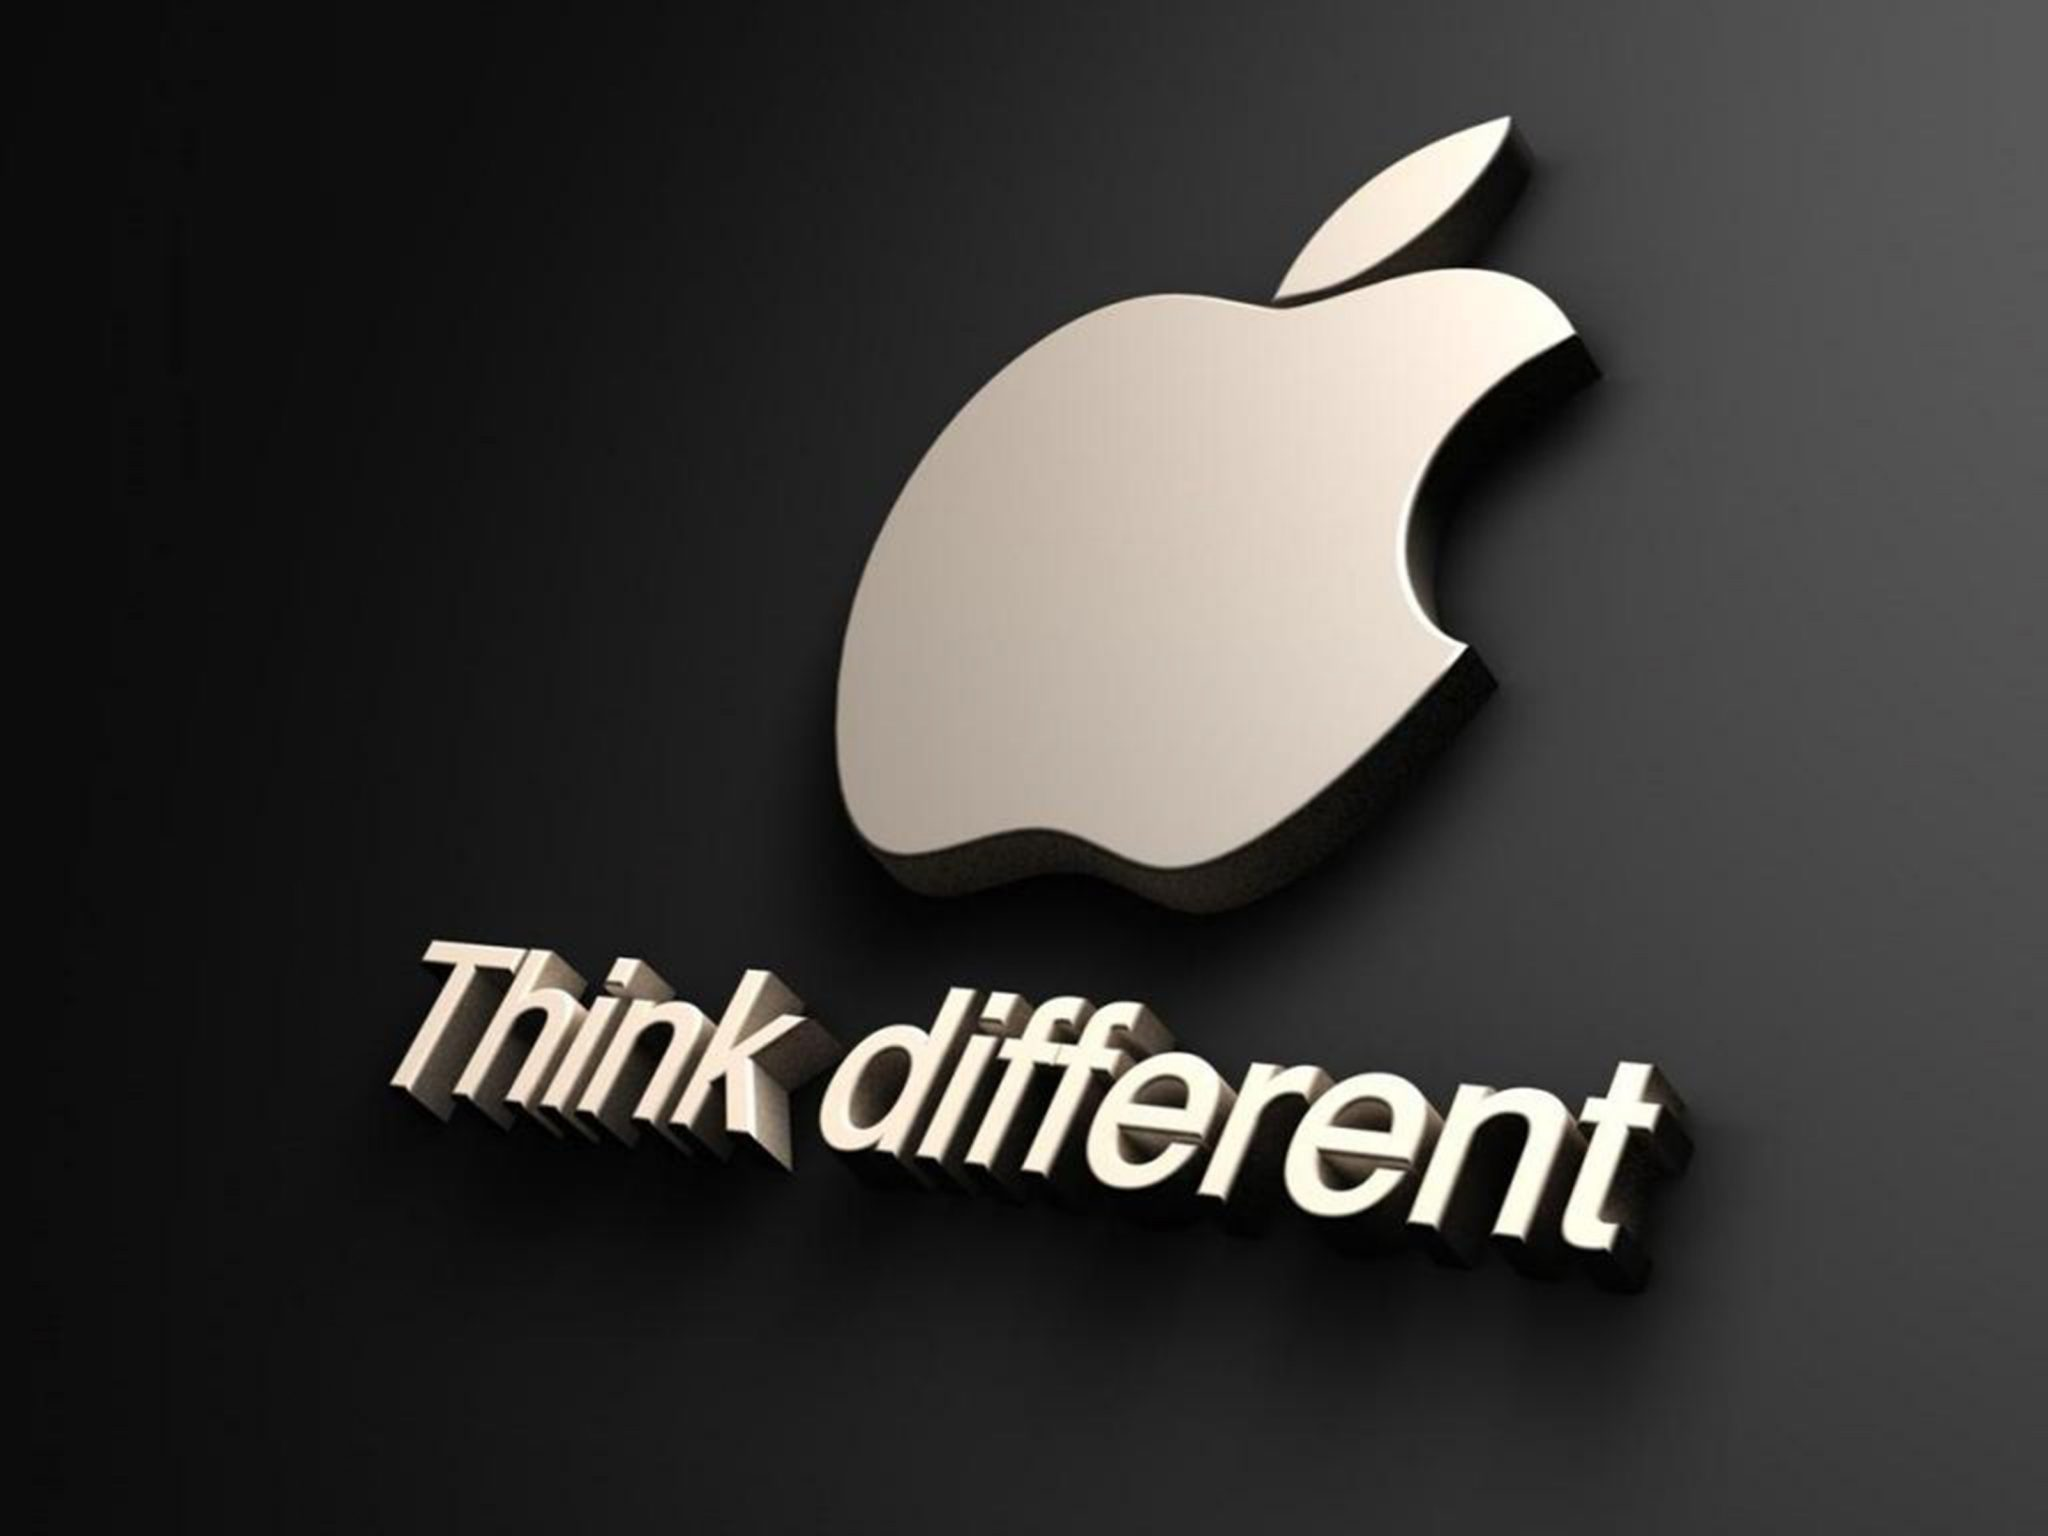 2048x1536 wallpaper Apple Think Different Ipad Wallpaper 2048x1536 pixels resolution